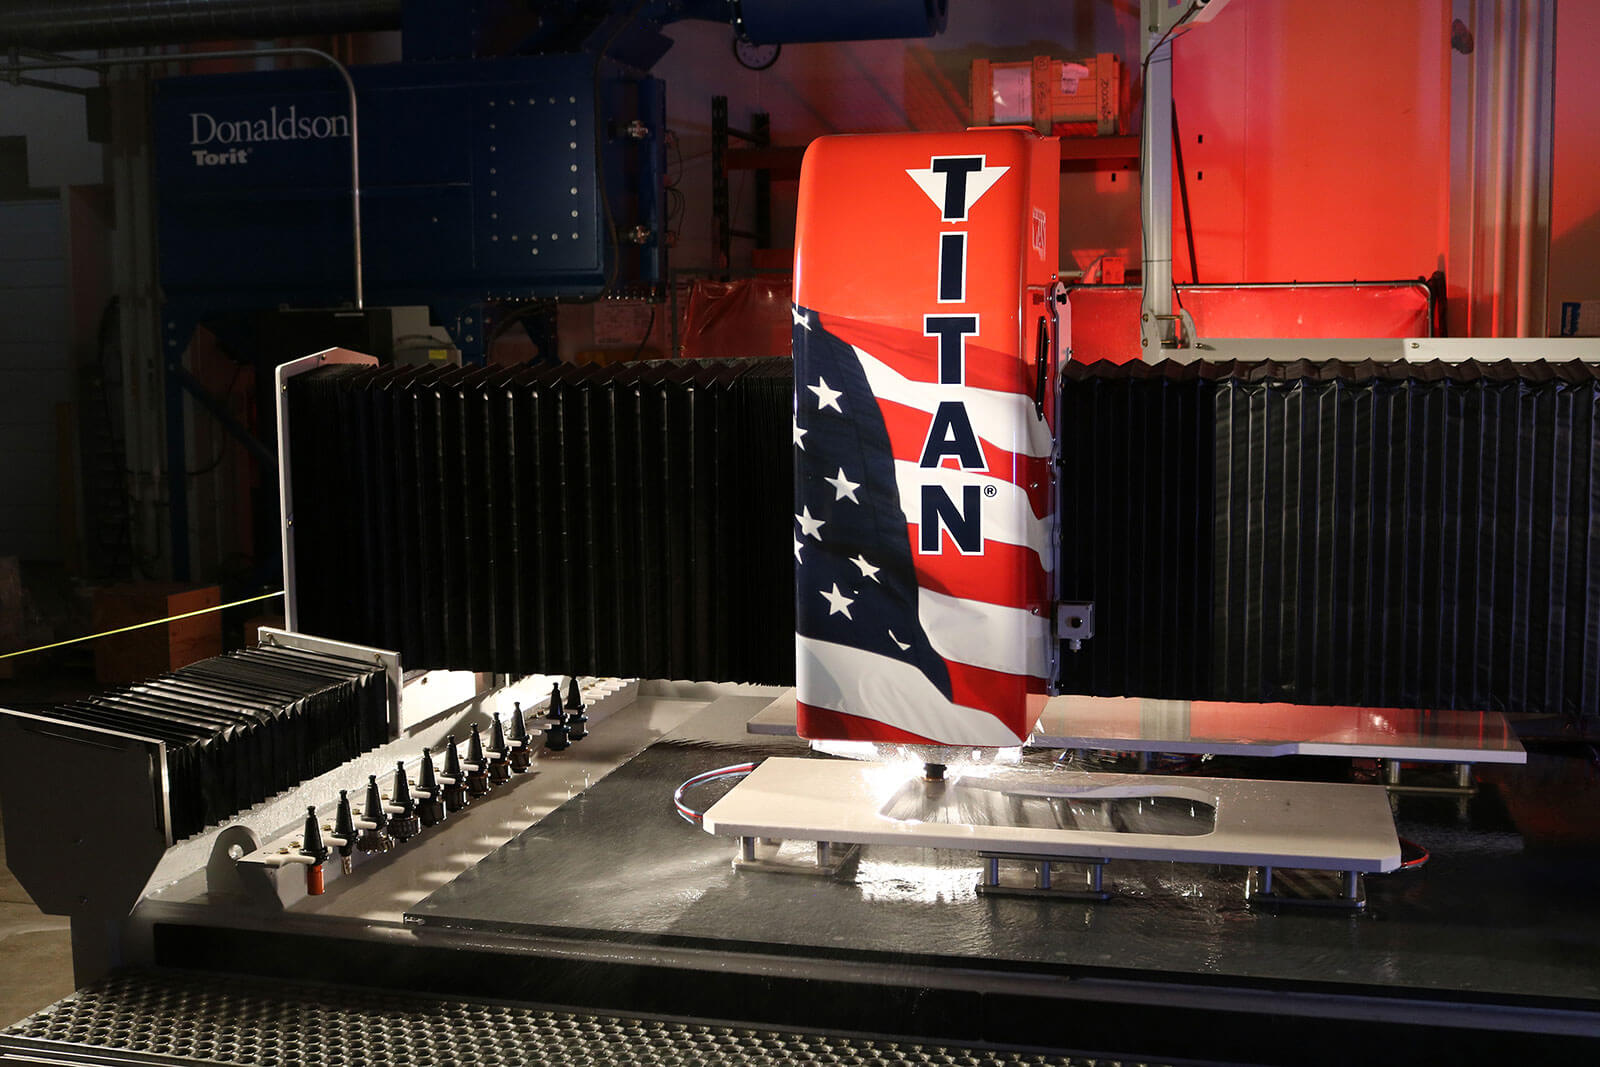 High Speed Stone Polishing | TITAN CNC Router from Park Industries for Stone Fabrication